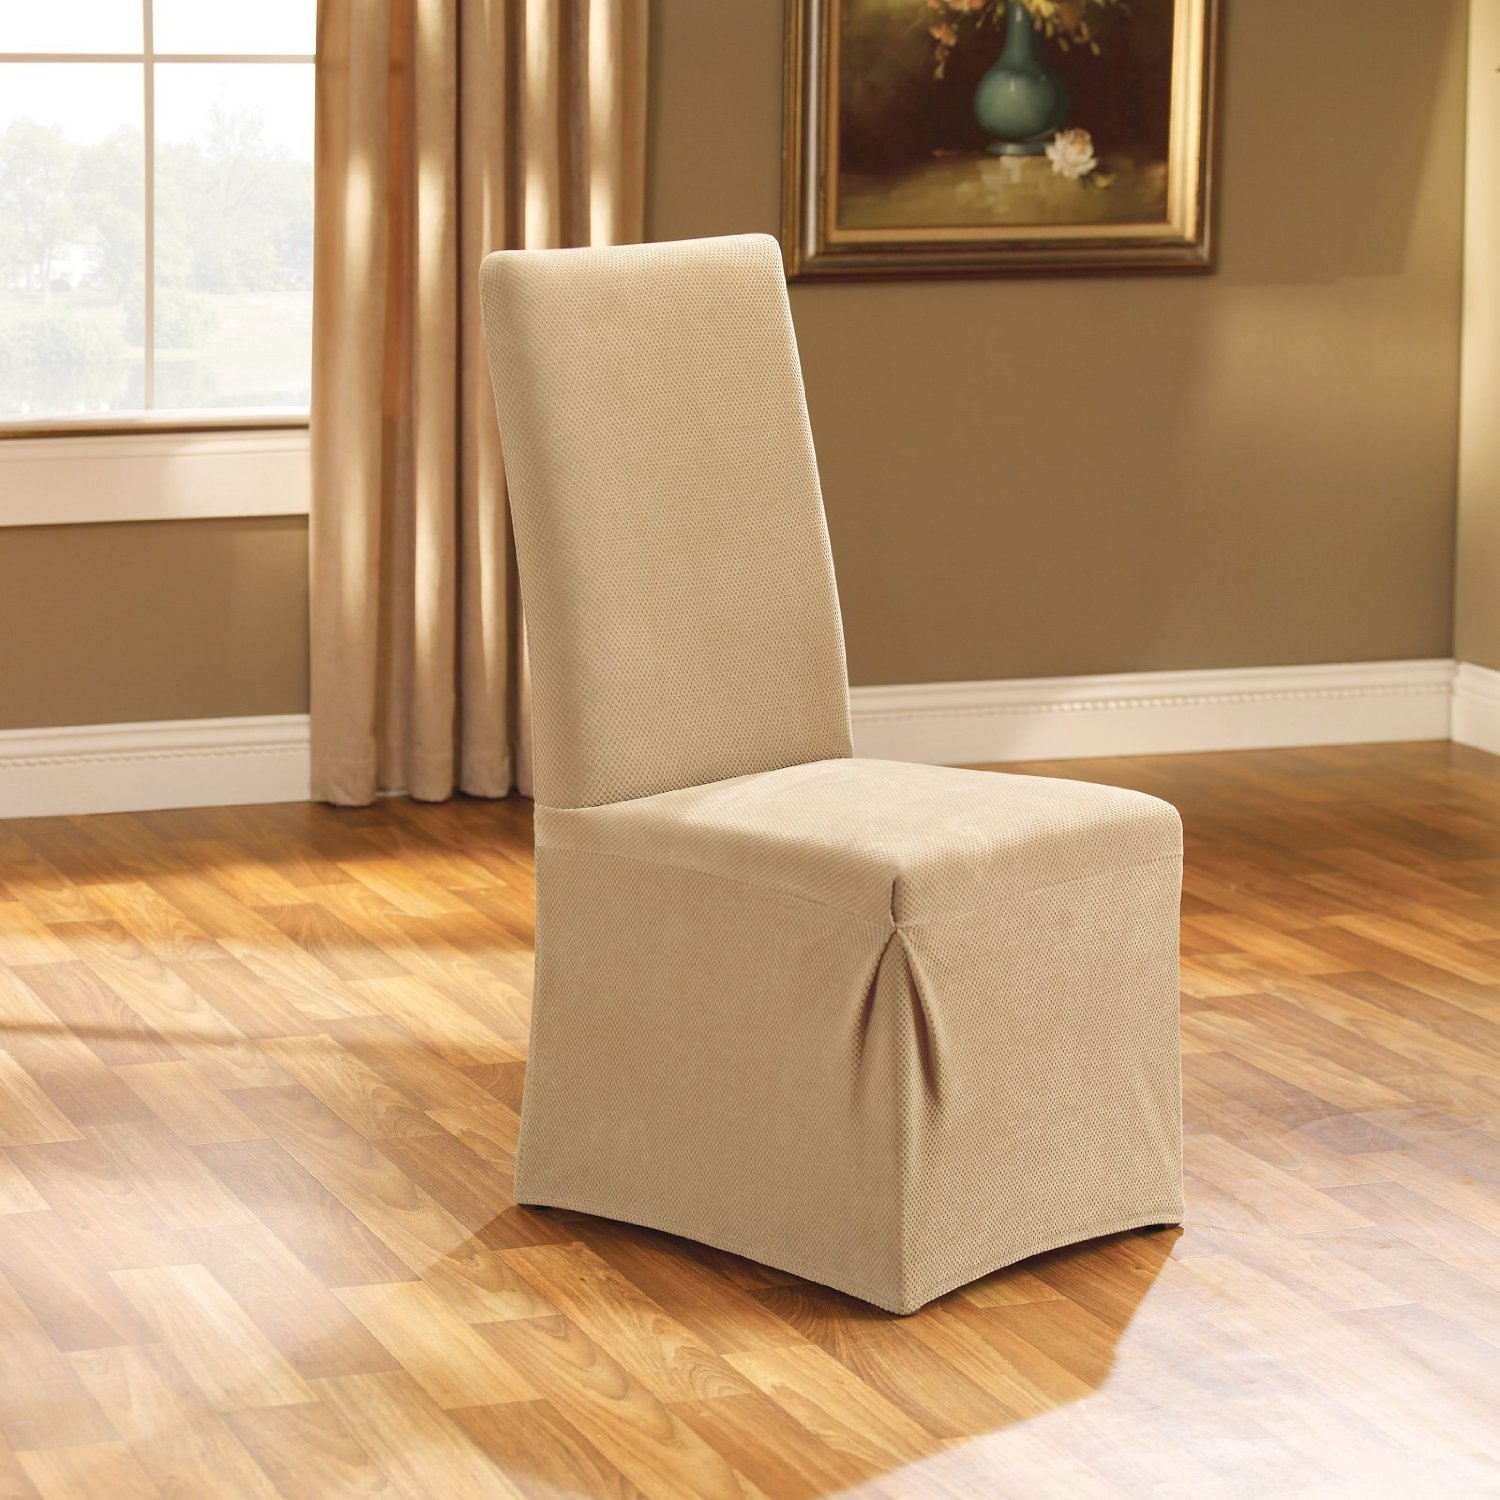 White slipcovered chair ideas homesfeed for Slipcovered chairs